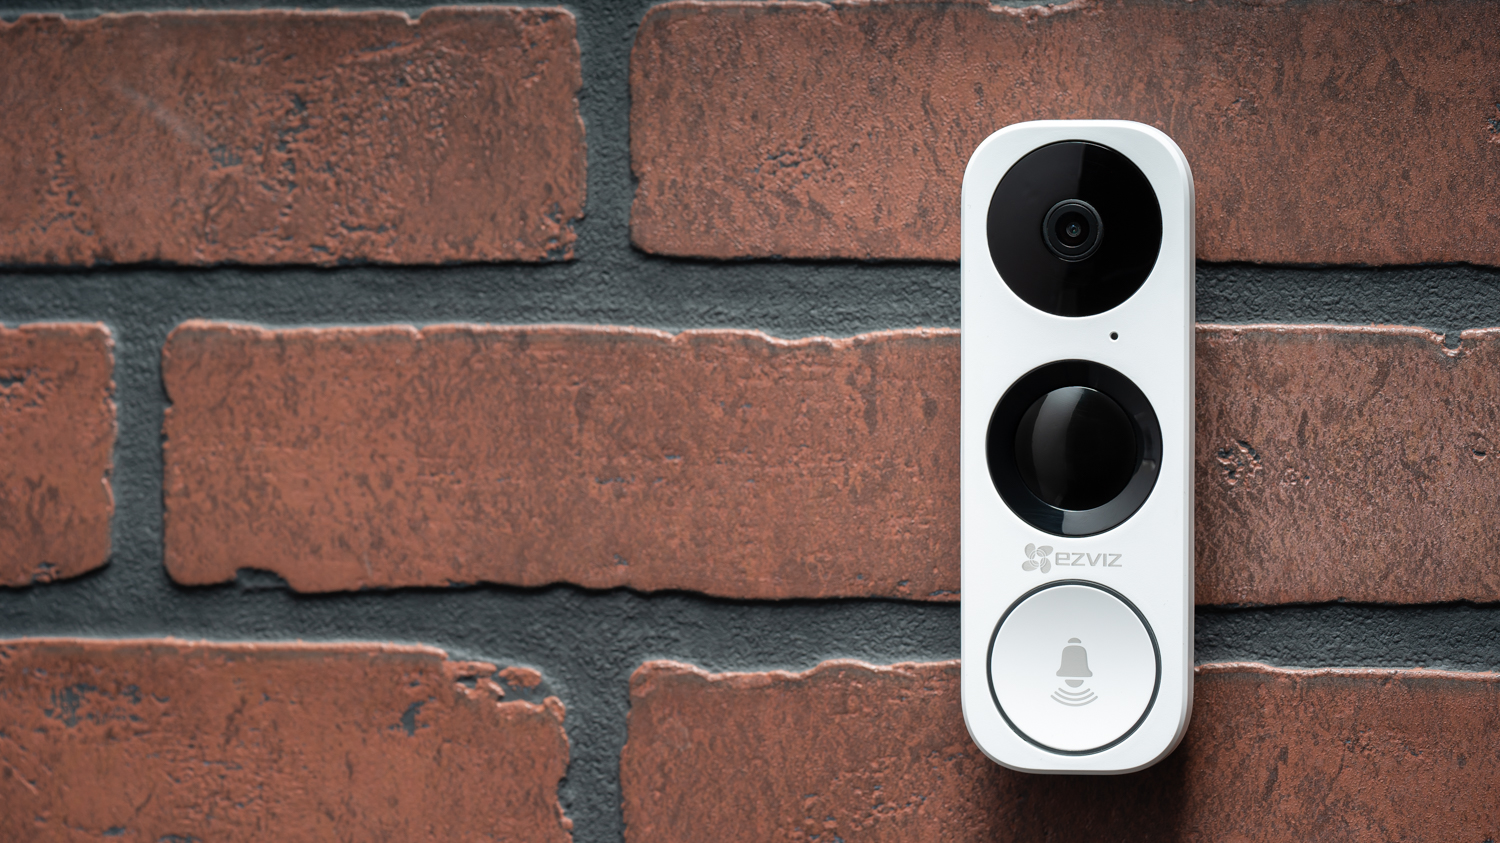 The EZVIZ DB1 is a sleek video doorbell addition to their Smart Home ecosystem